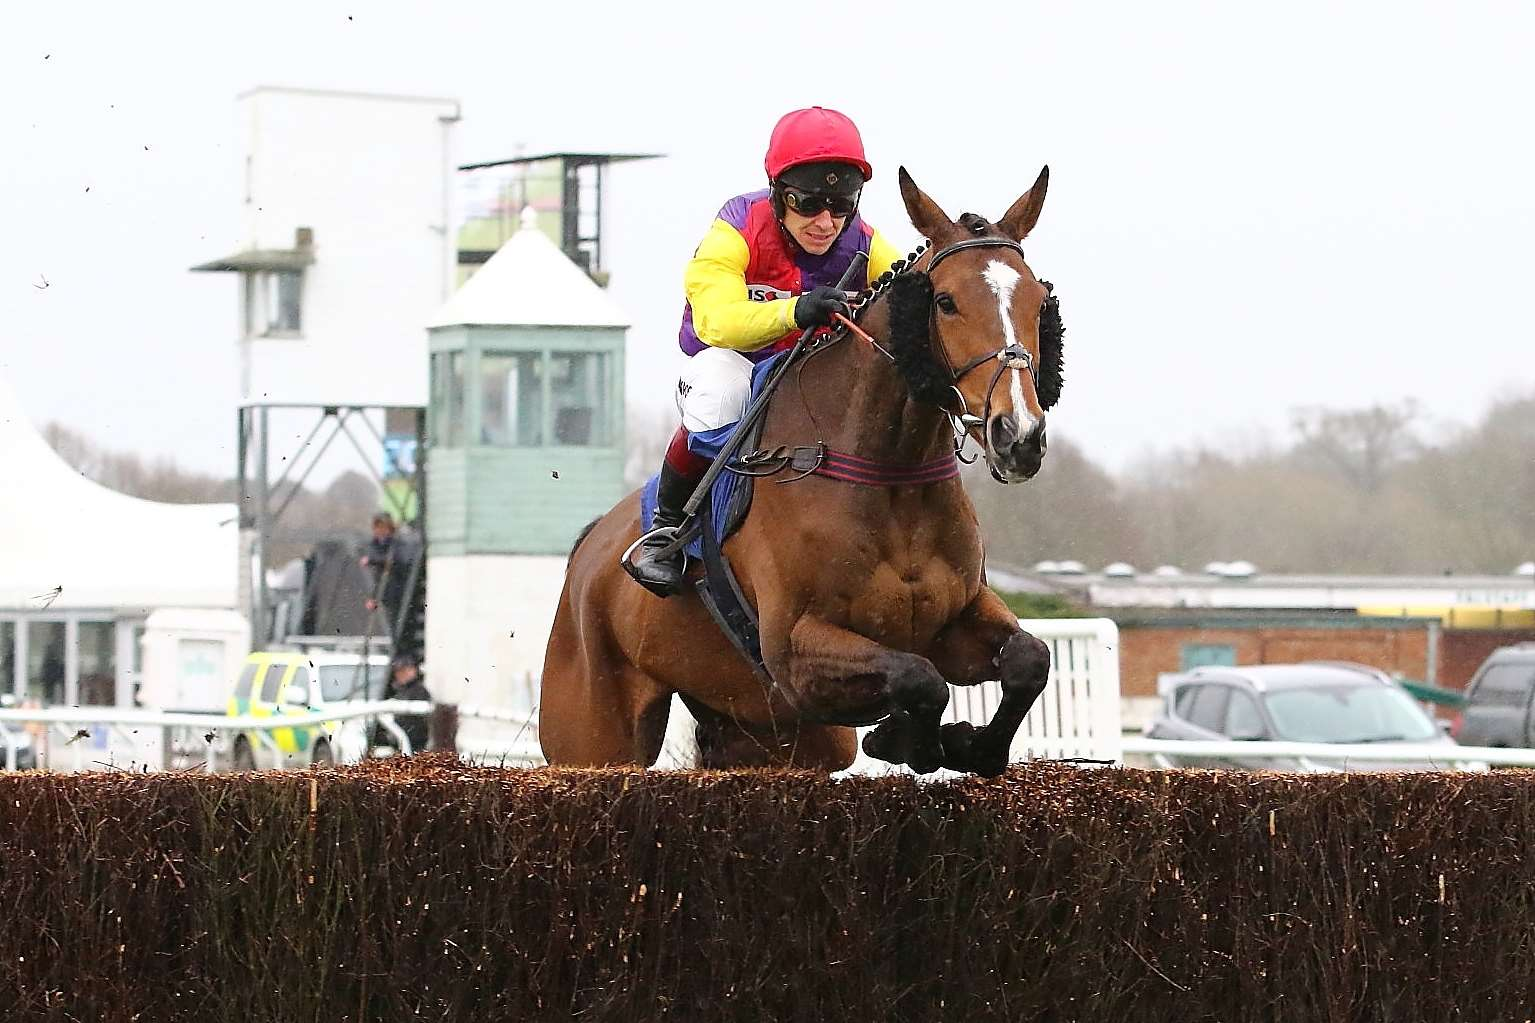 Tidal Flow jumps the first in the Read The aidan-coleman.com Blog Novices' Chase at Stratford's season opener. Photo: David Pratt / dwprattracingphotography